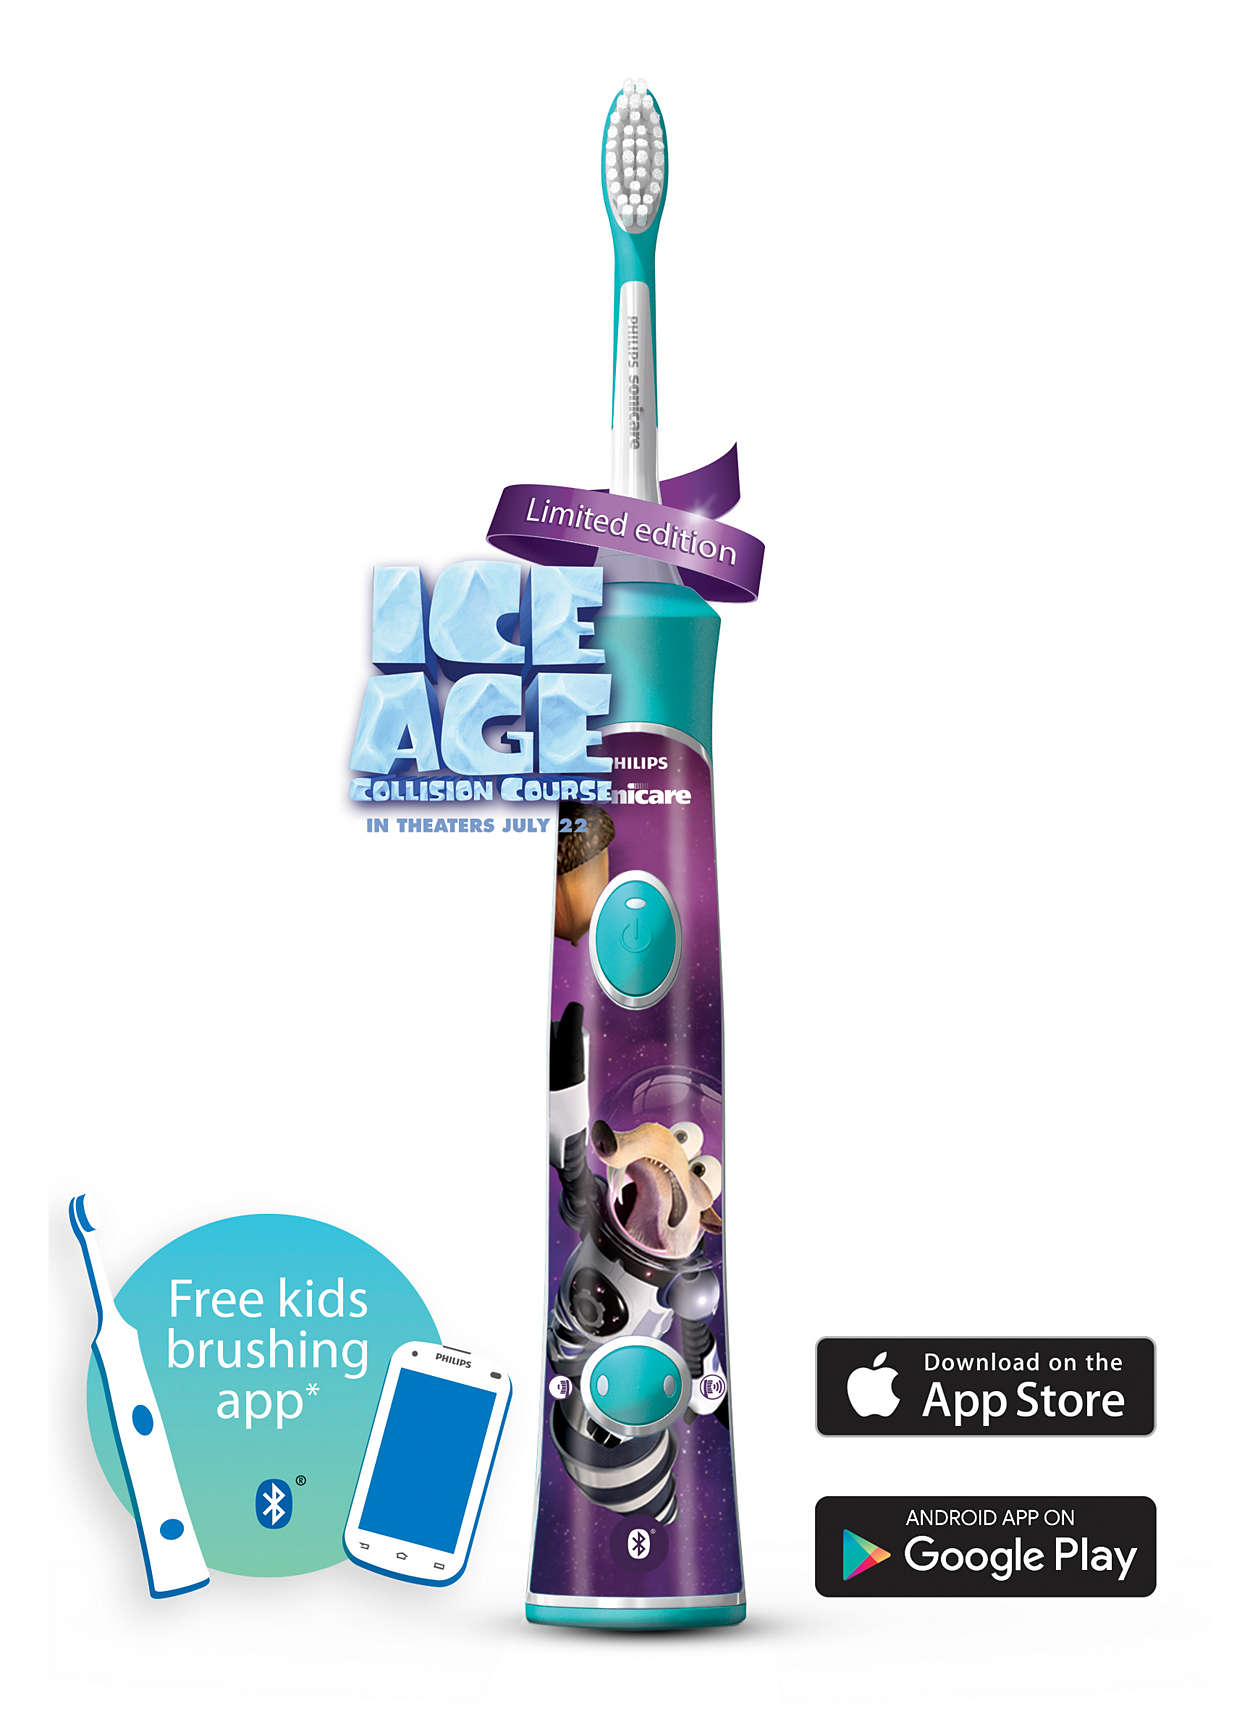 For Kids Sonic Electric Toothbrush Hx6321 05 Sonicare